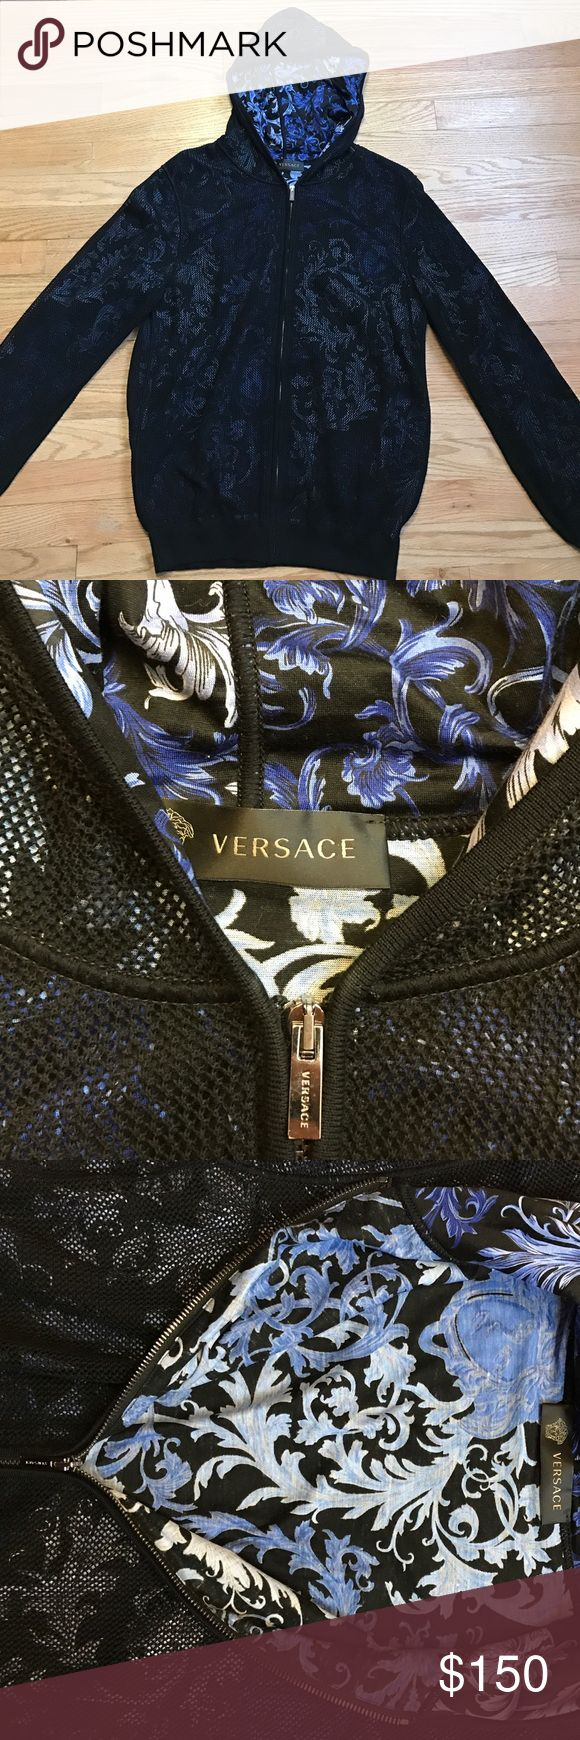 Versace hoodie Excellent like new Versace light weight hoodie. Black fishnet material over silky Versace blue floral design. I am obsessed with this; it's hard to part with this. Price firm Versace Sweaters Zip Up